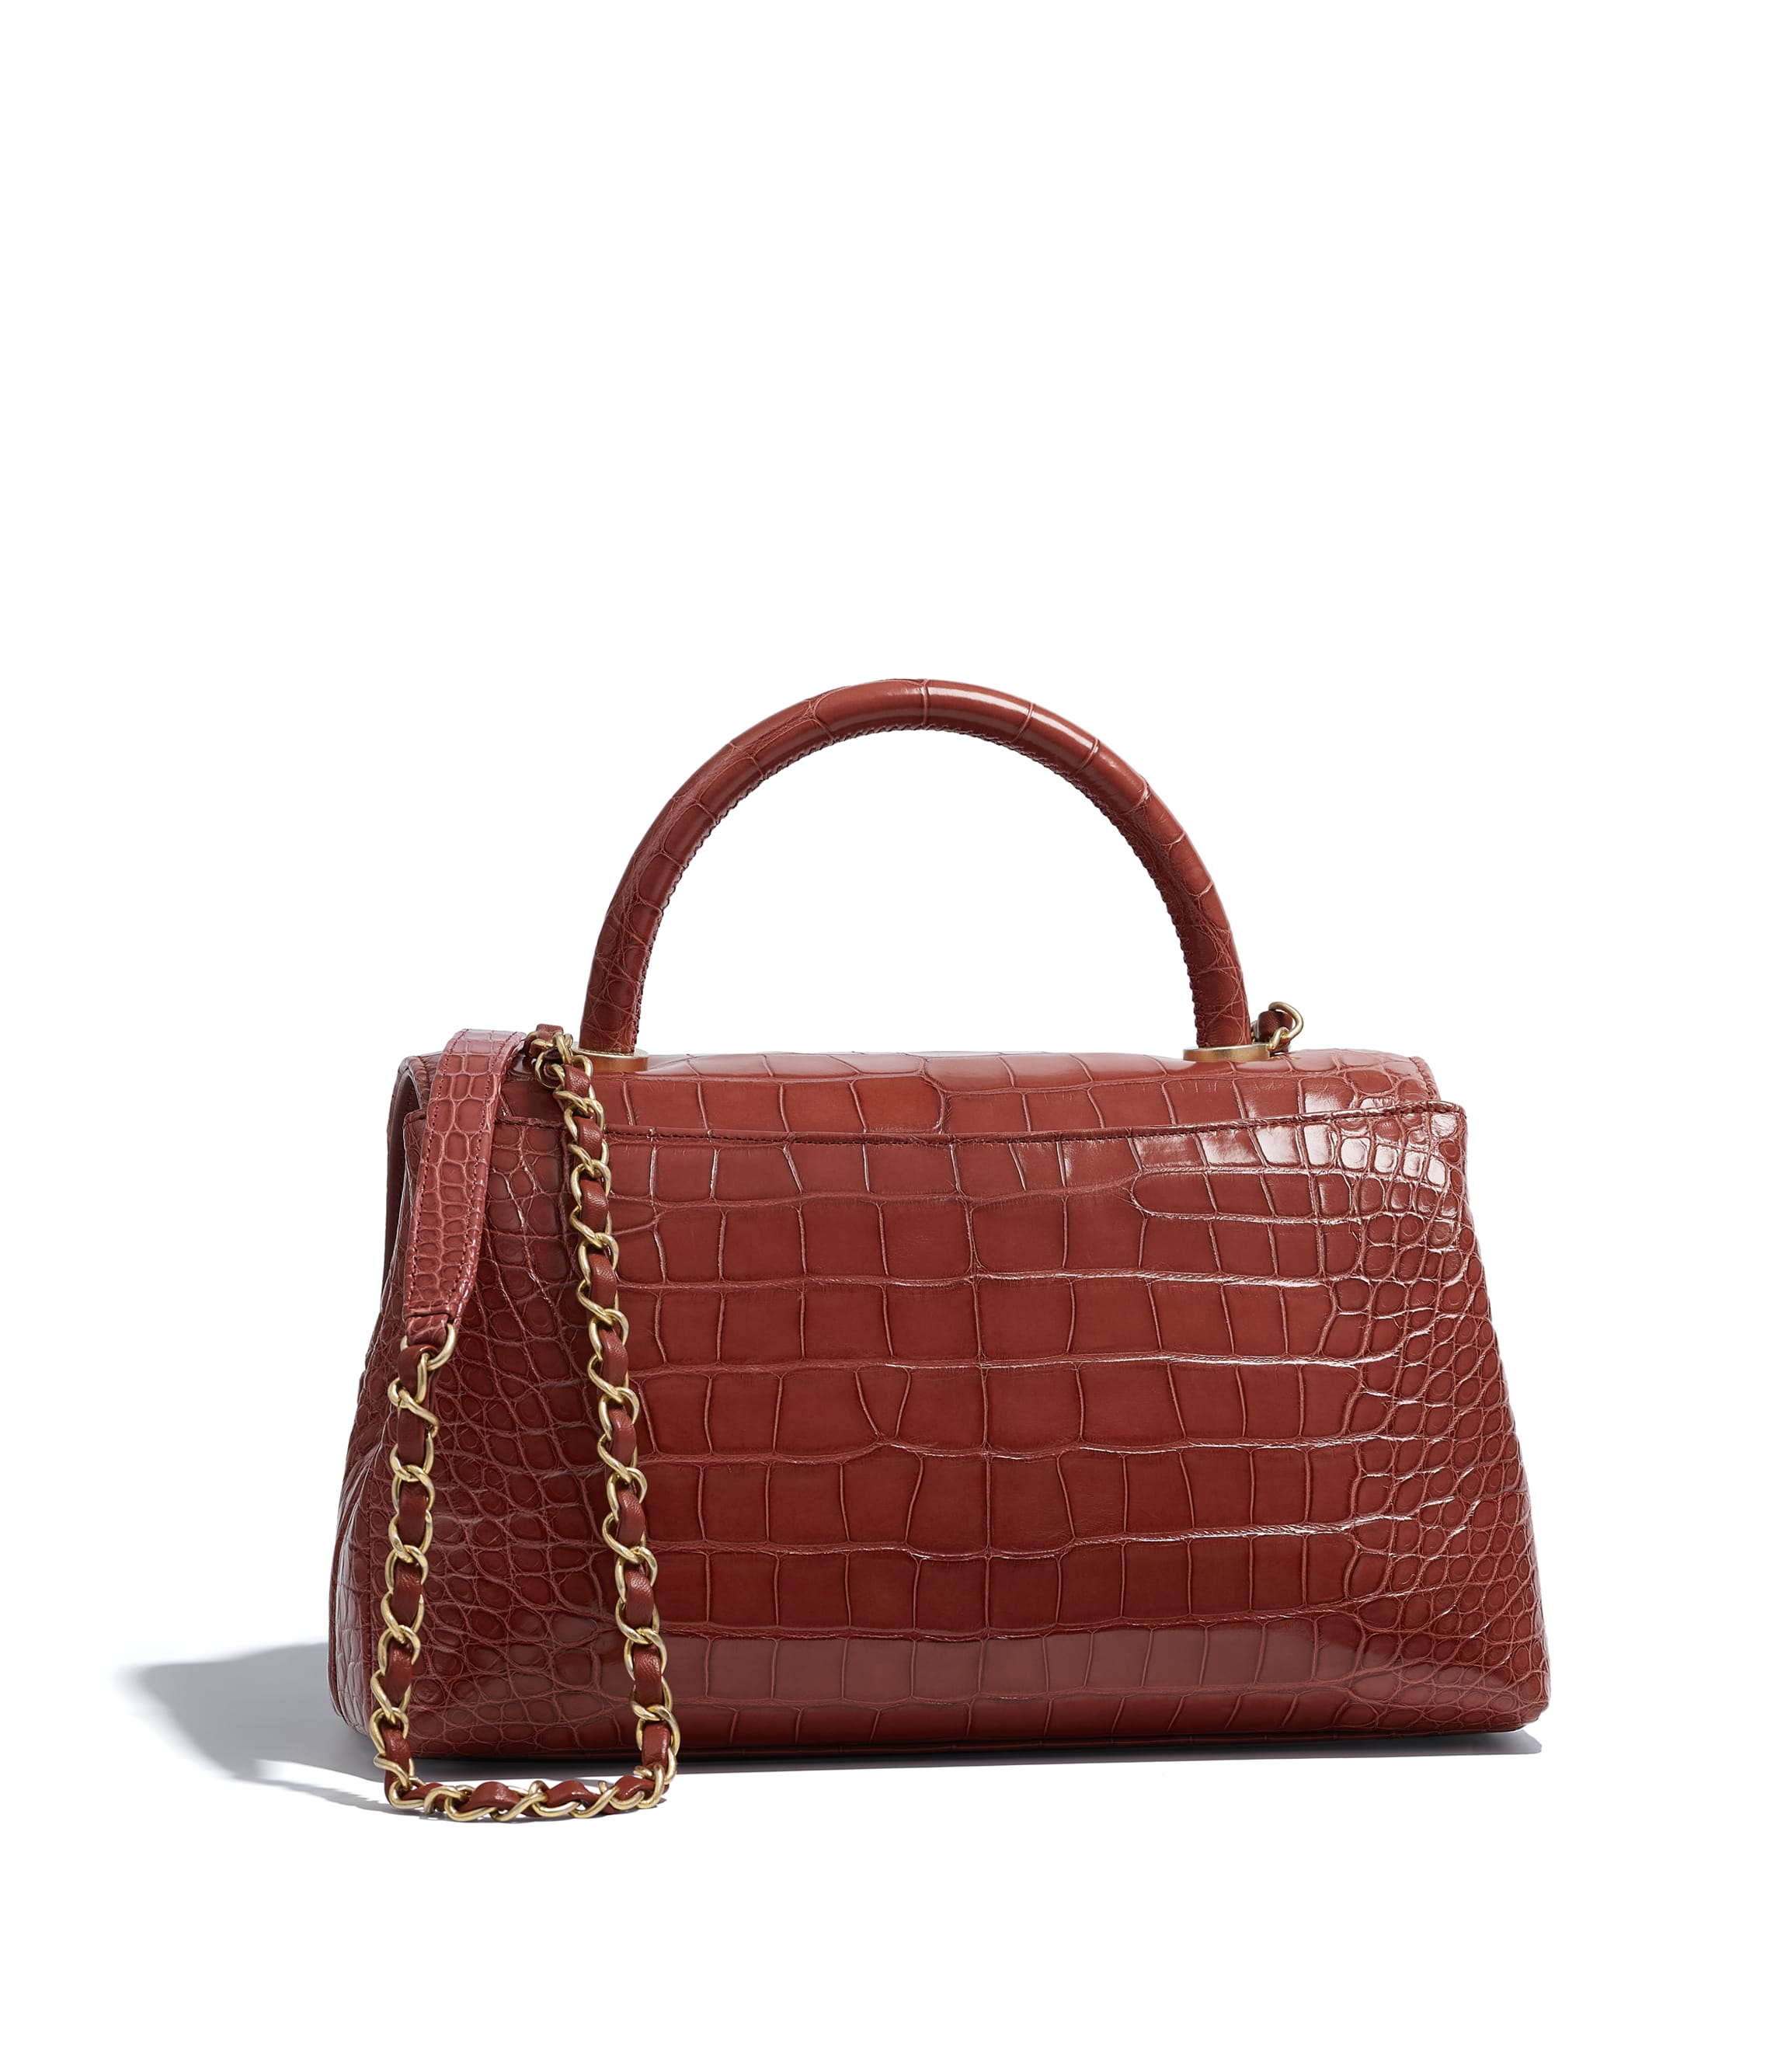 20116e0277d1 Chanel Flap Bag With Top Handle Alligator | Stanford Center for ...